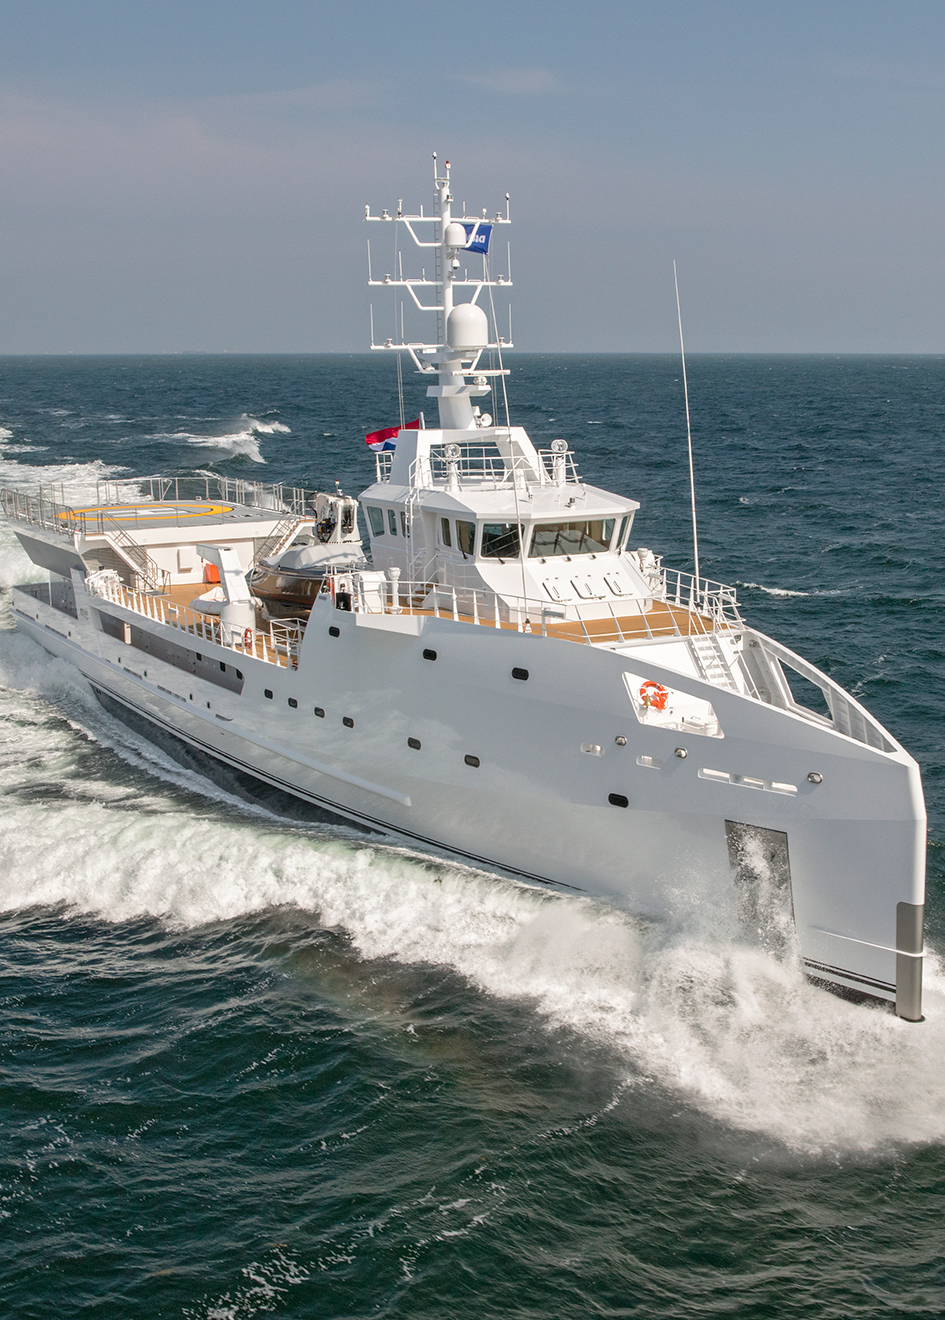 bow-view-of-69-metre-damen-superyacht-support-vessel-game-changer